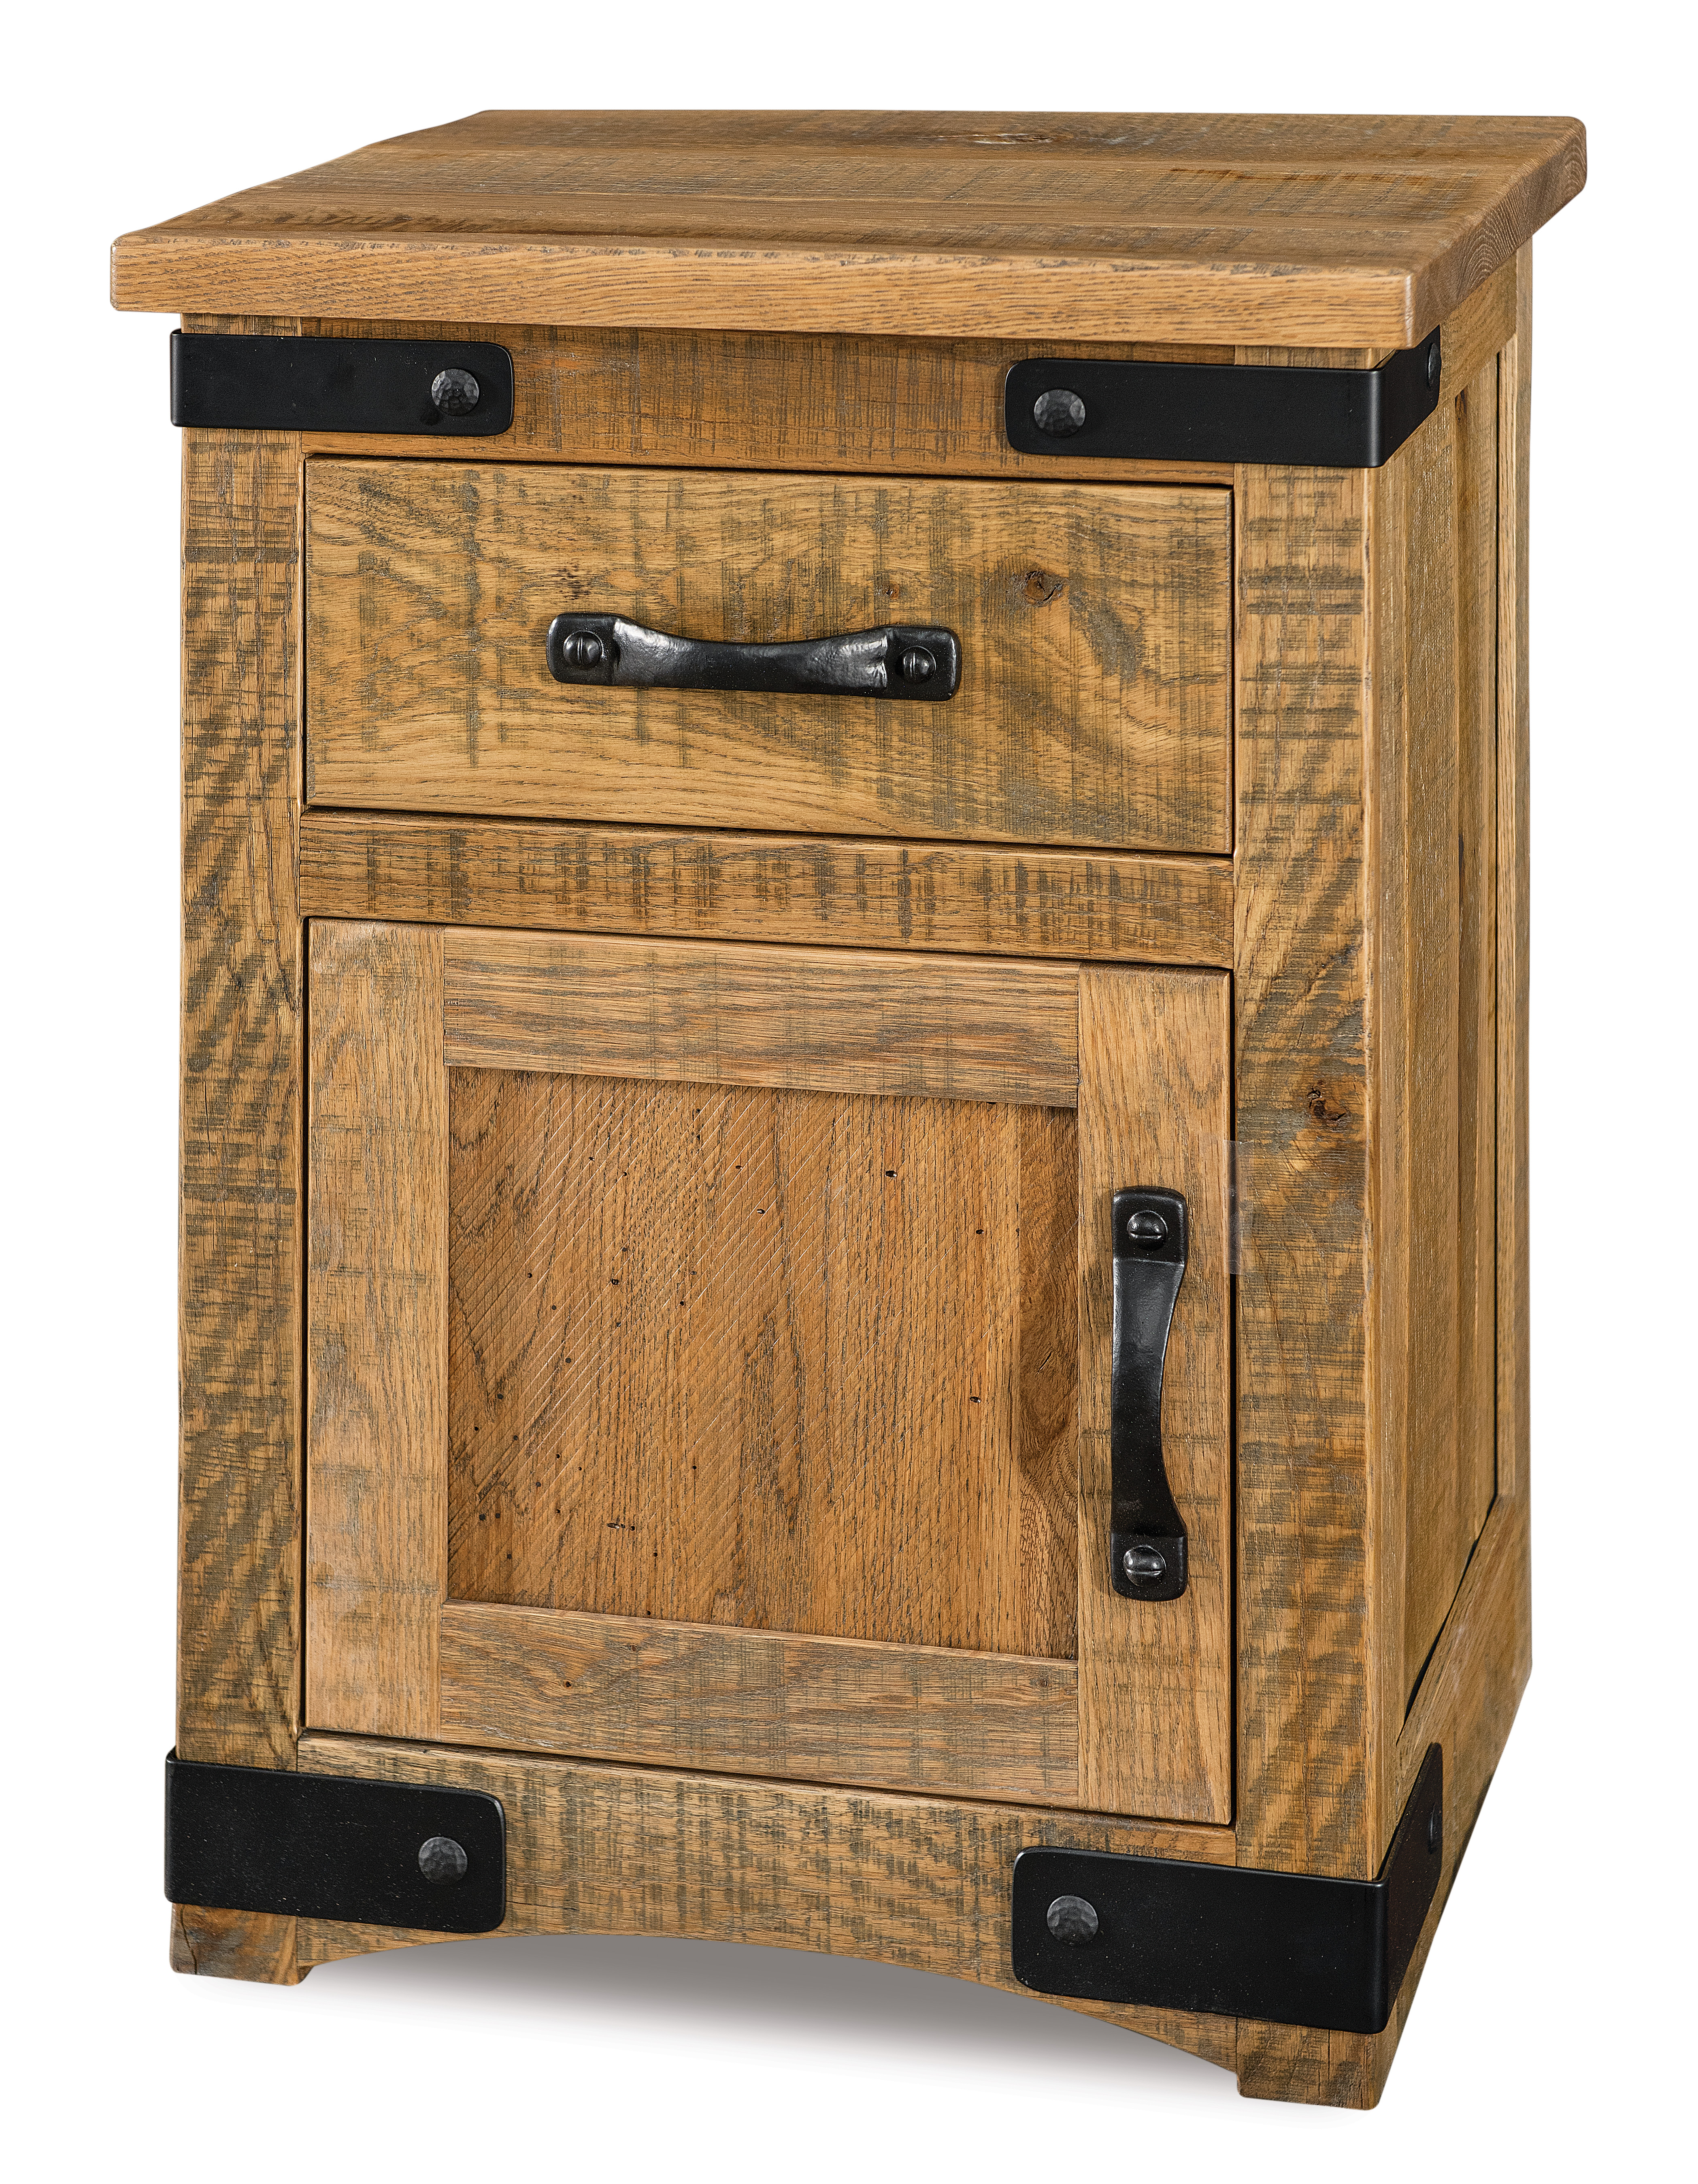 Orewood Rough-Sawn 1 Drawer 1 Door Nightstand Product